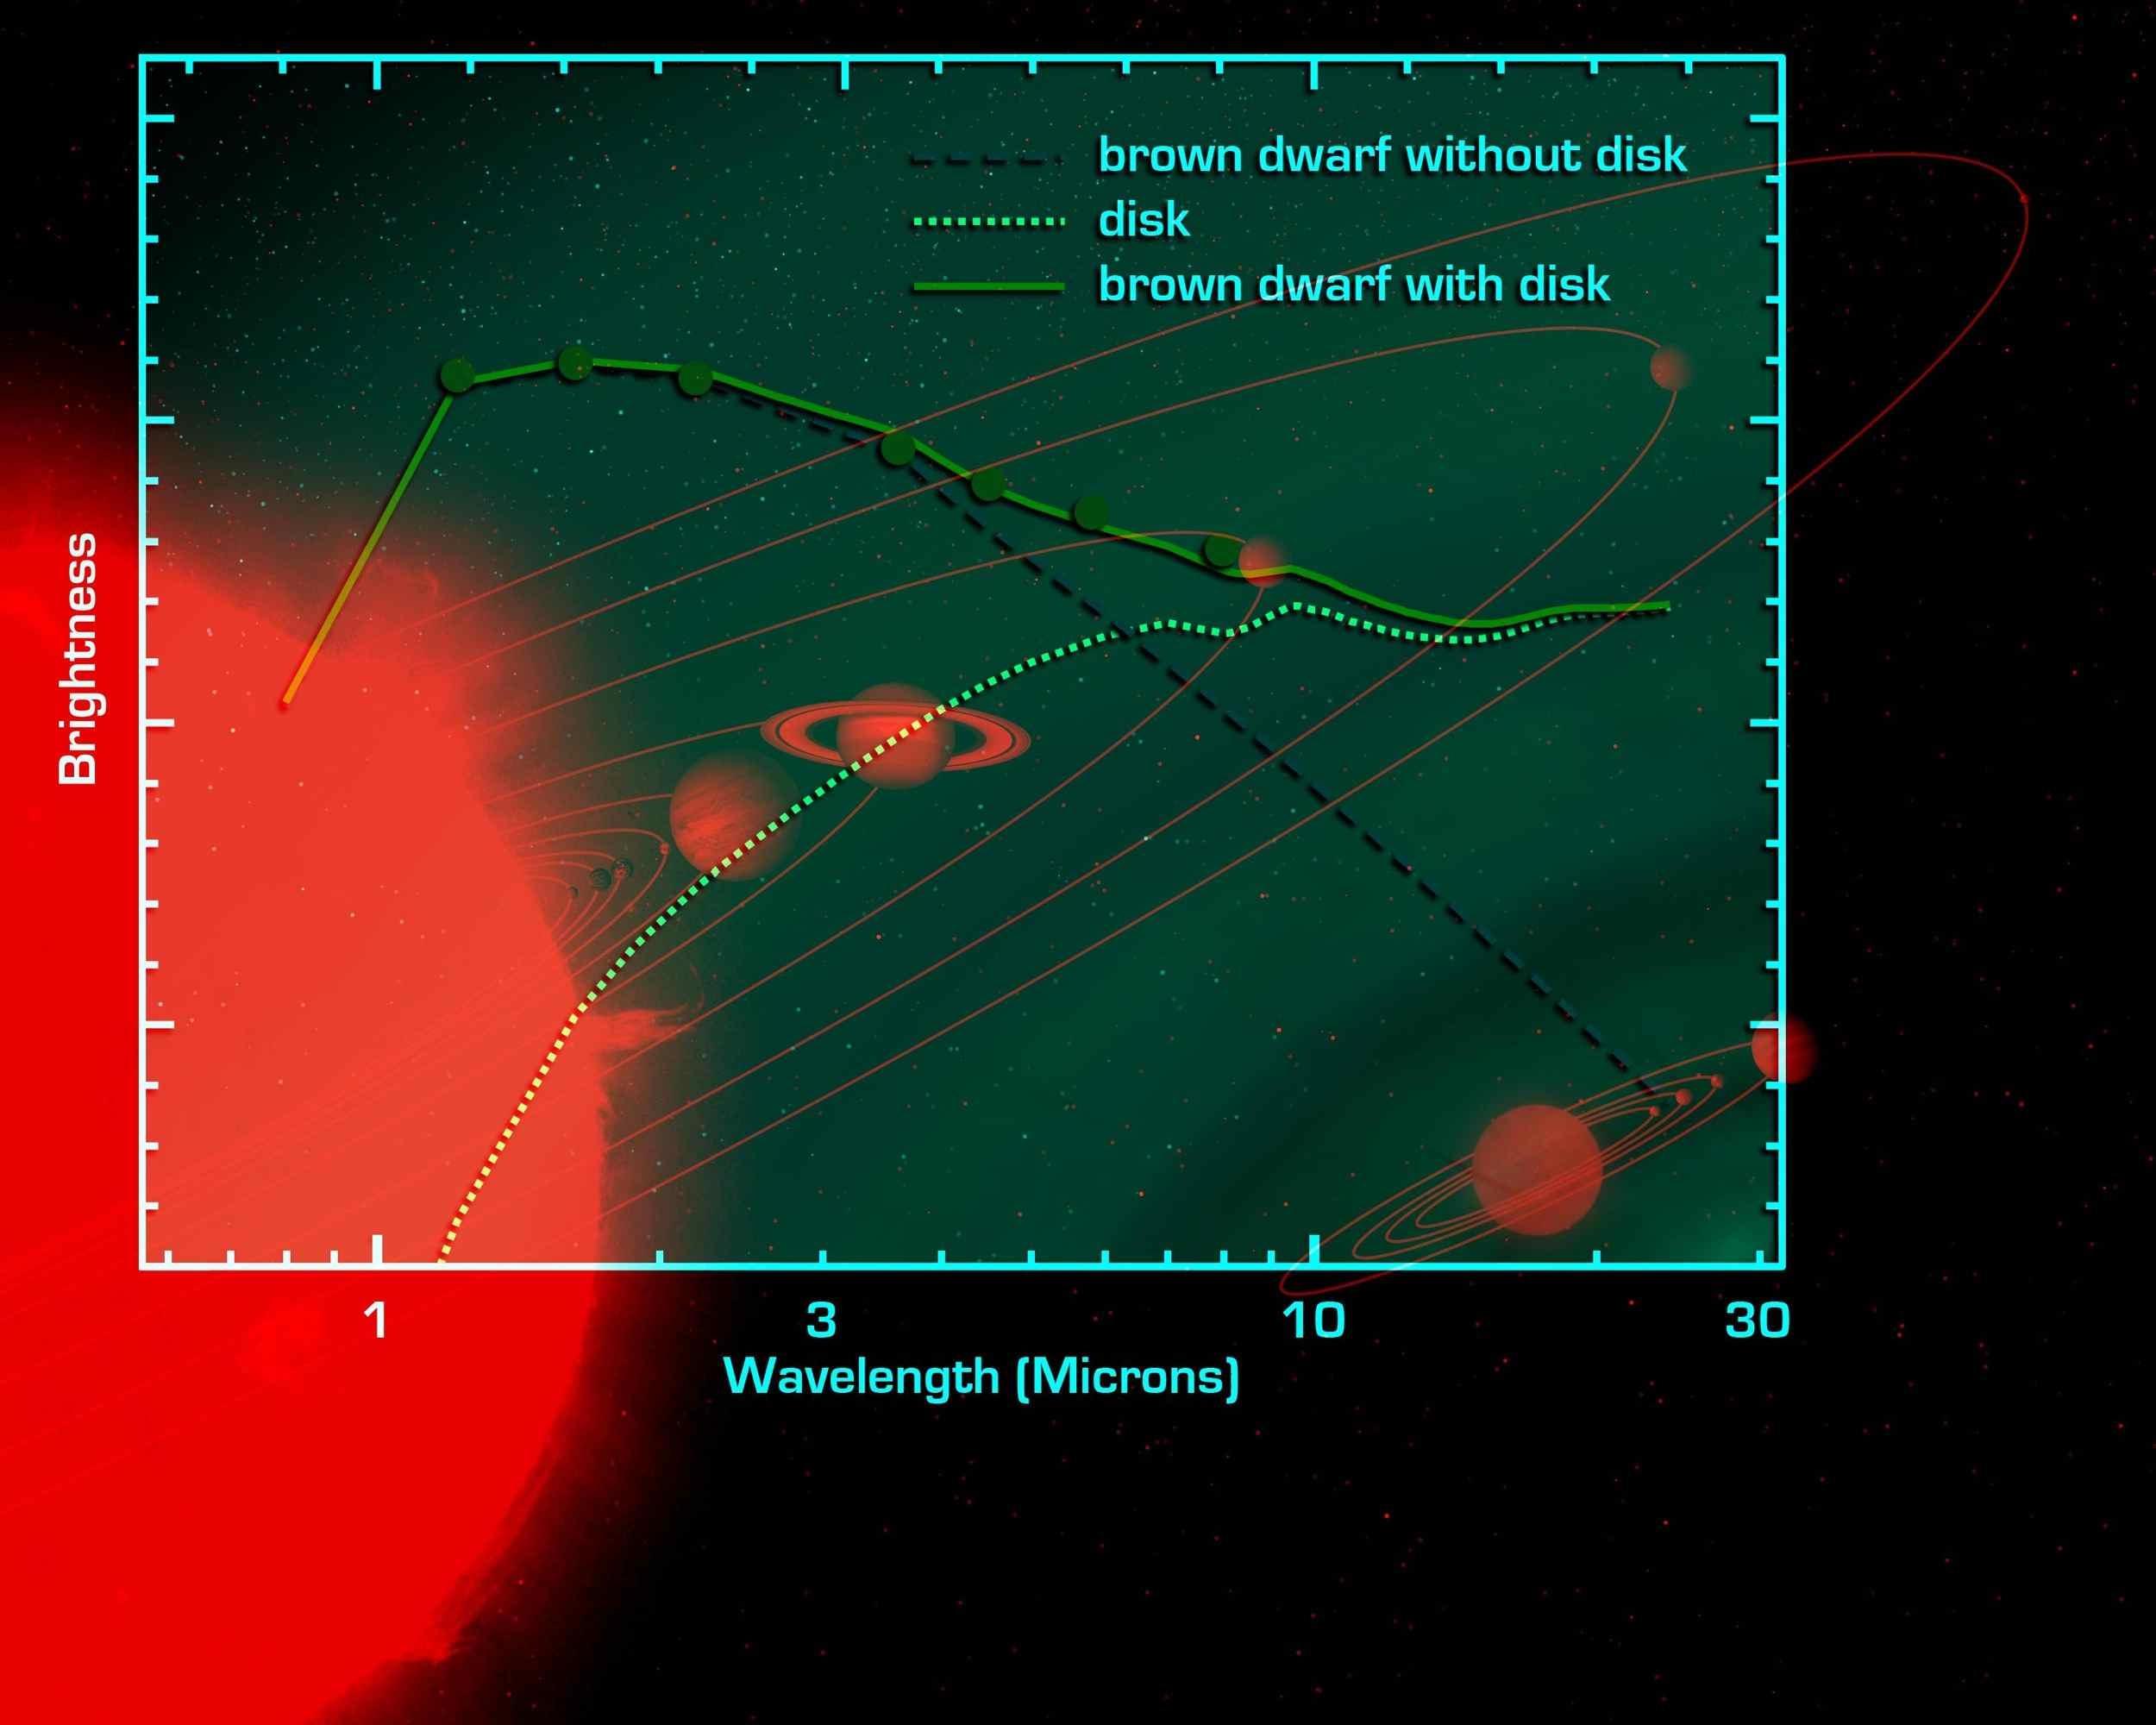 NASA's Spitzer Space Telescope set its infrared eyes on an extraordinarily low-mass brown dwarf called OTS 44 and found a swirling disc of planet-building dust shown in this artist concept.